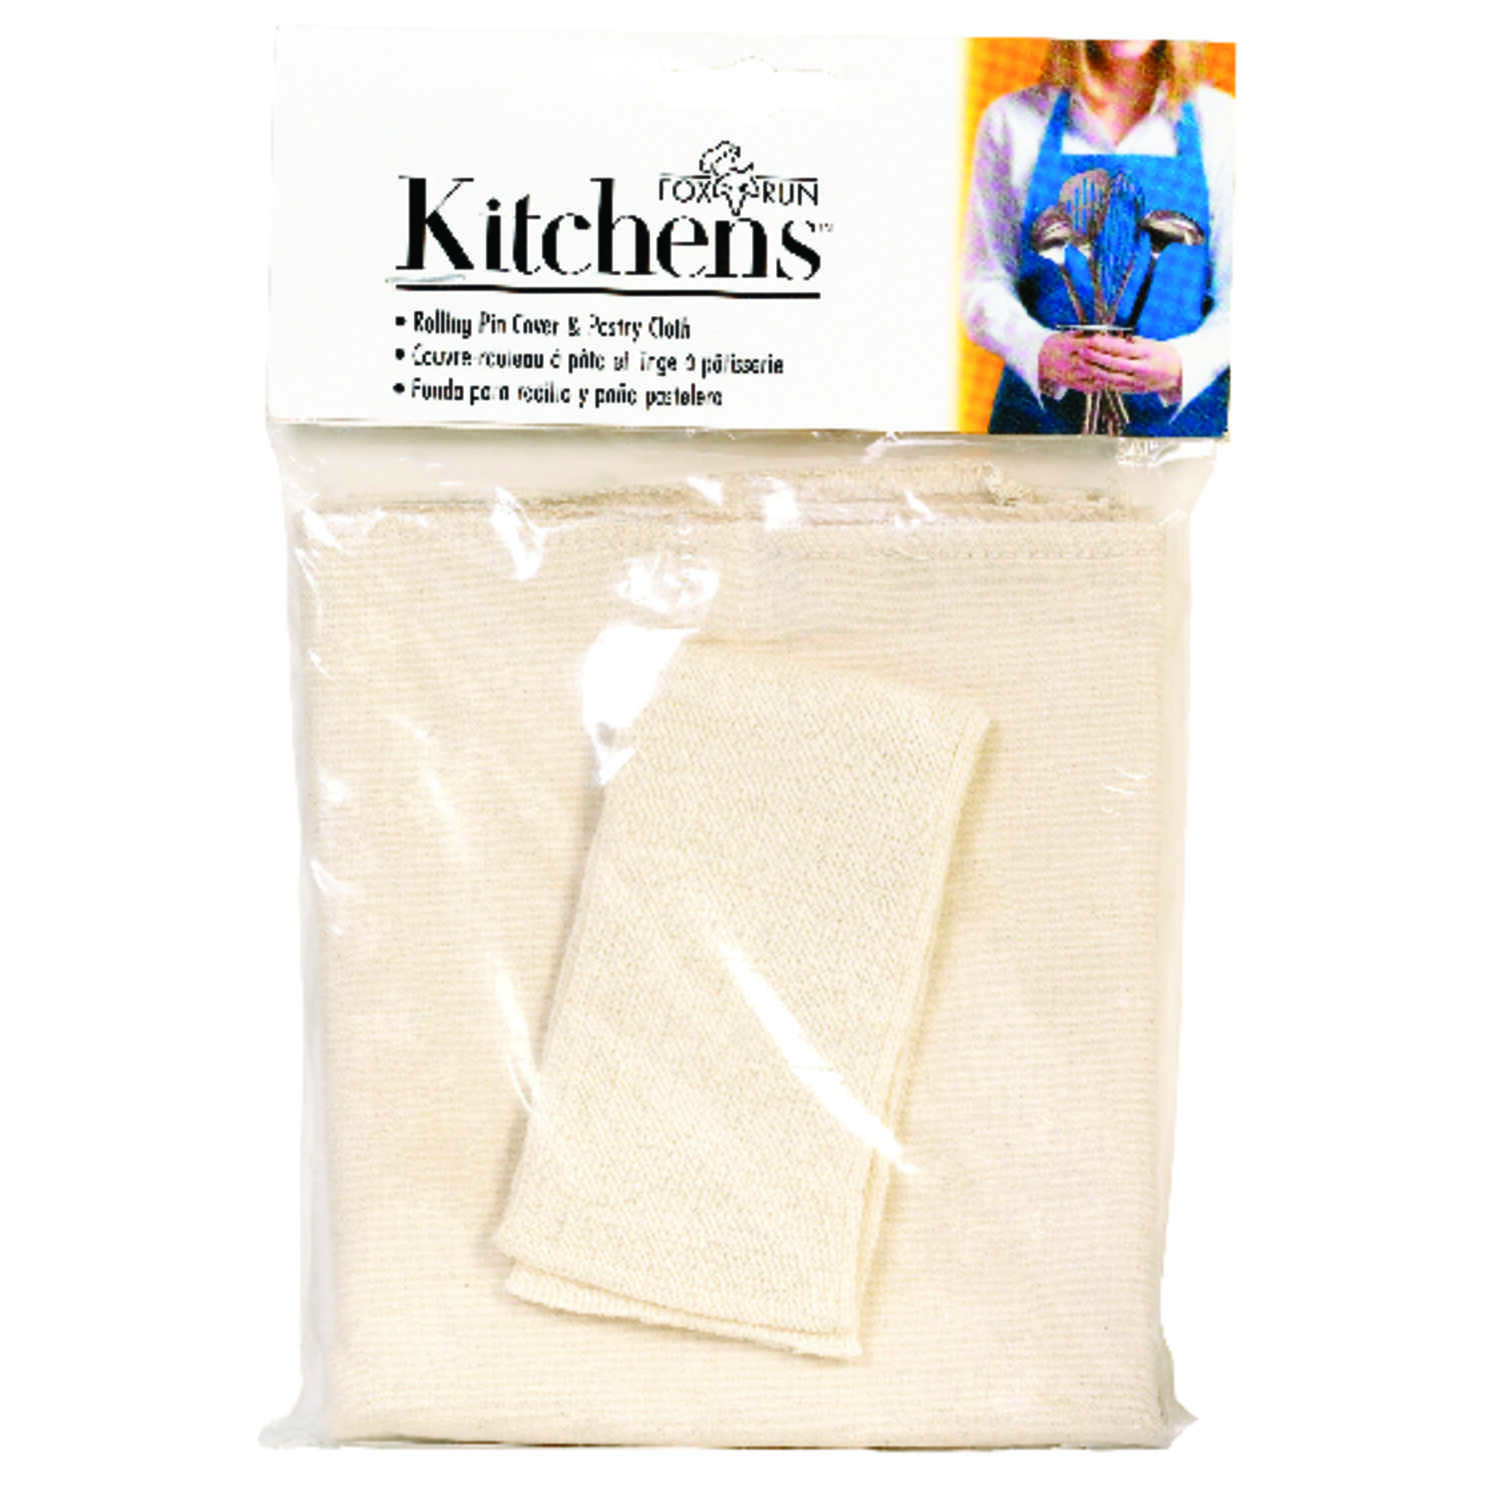 Fox Run  19.5 in. Dia. x 23.5 in. L Cotton  White  Pastry Cloth and Rolling Pin Cover  Kitchens